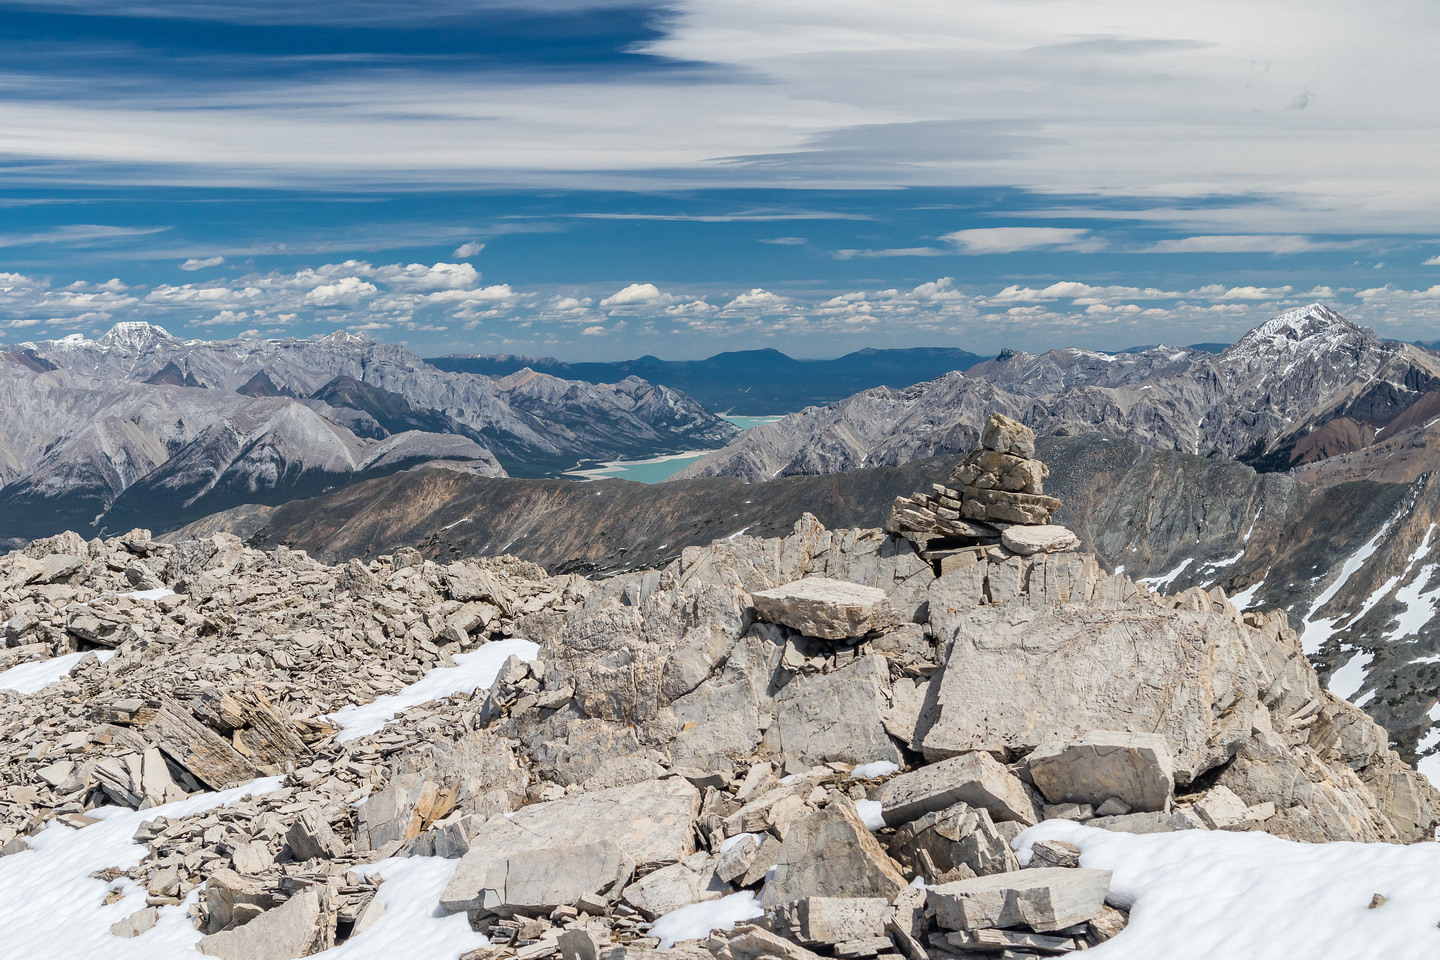 Views past the summit cairn towards Abraham Lake with Elliot Peak rising at right, Hangman at left.